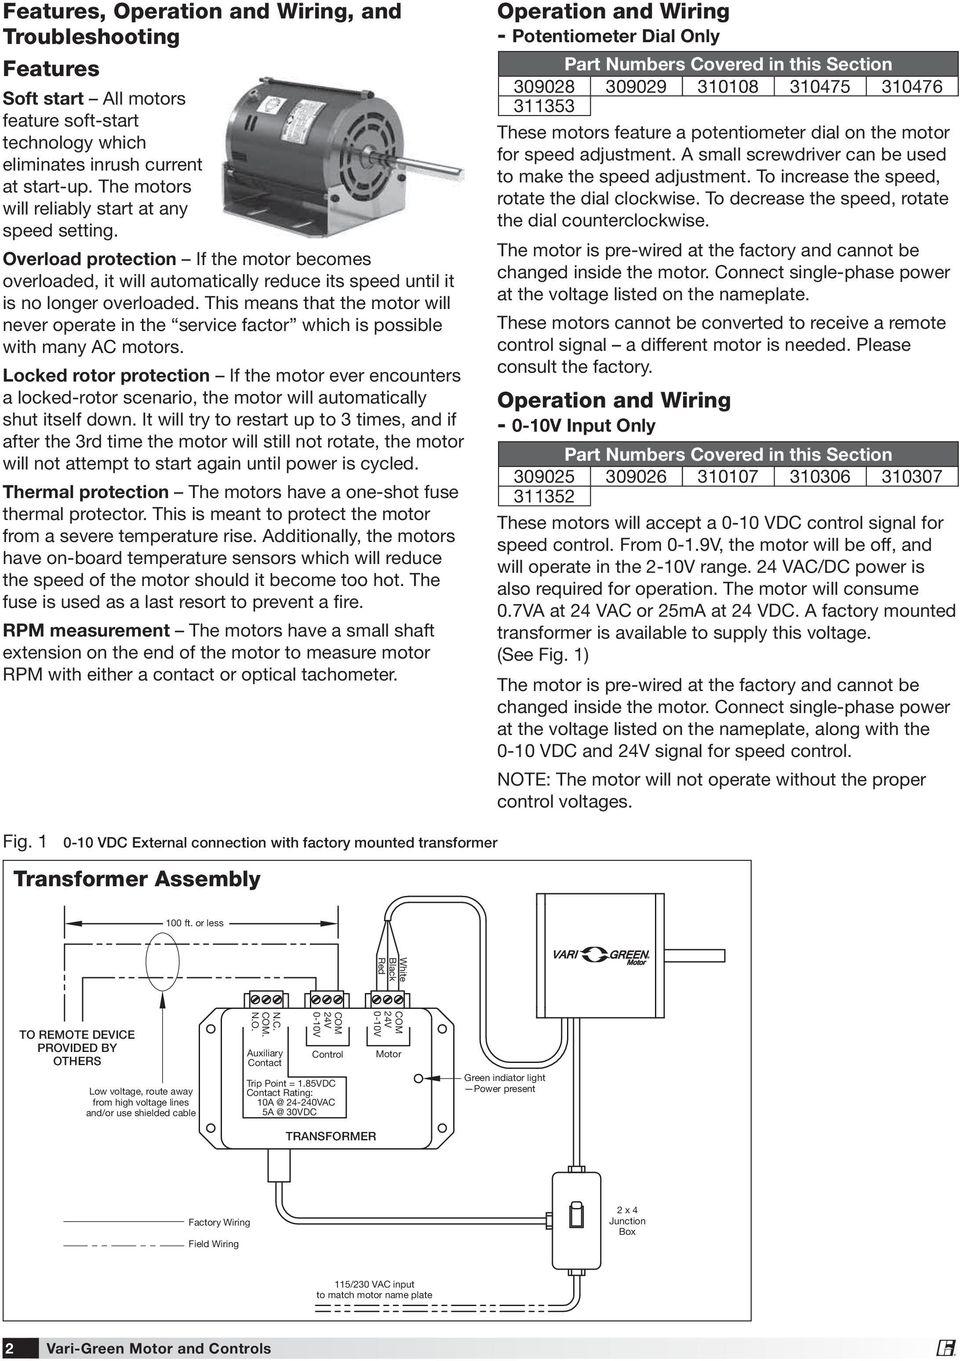 Installation Operation And Maintenance Manual Pdf 0 10vdc Ecm Motor Wiring Diagram This Means That The Will Never Operate In Service Factor Which Is Possible With